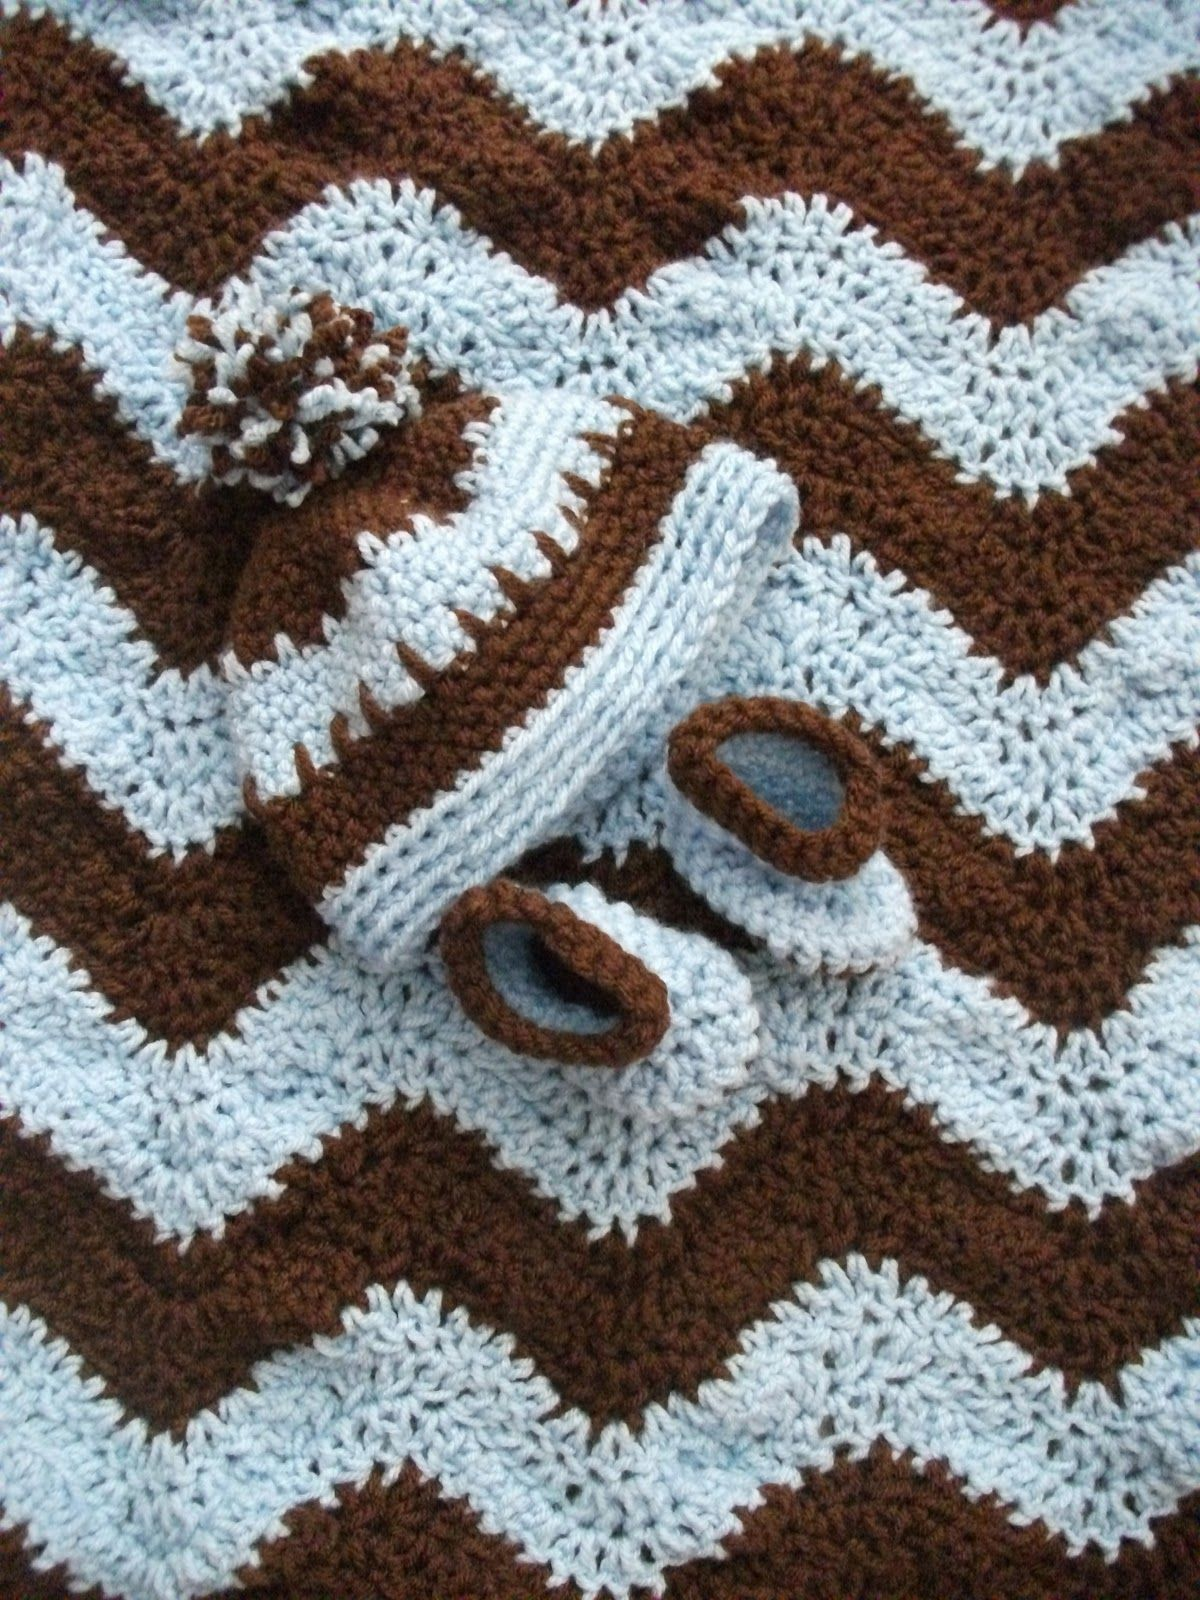 40 free crochet ripple afghan patterns lapghans baby blankets next blanket im trying chevron pattern our seven dwarfs baby isaacs crocheted gifts bankloansurffo Image collections